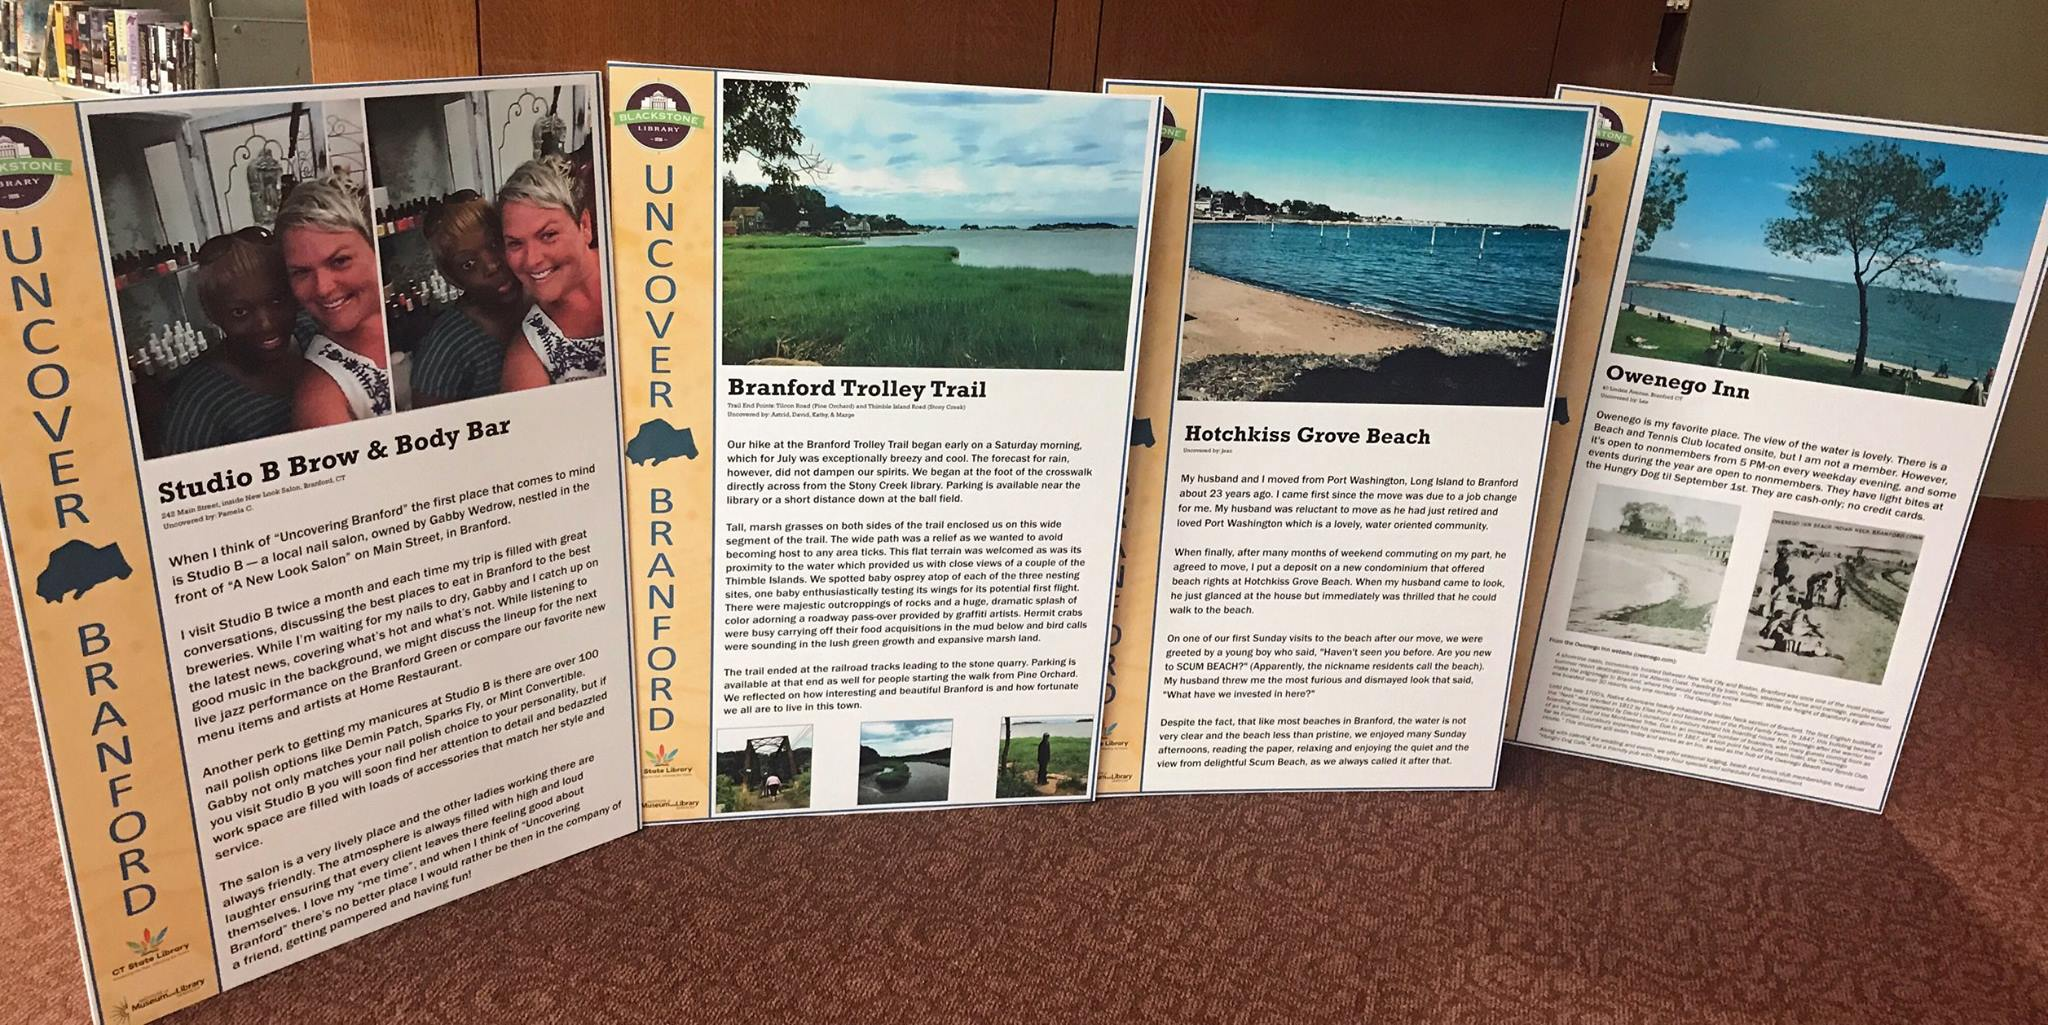 Photos and descriptions of Uncover Branford sites